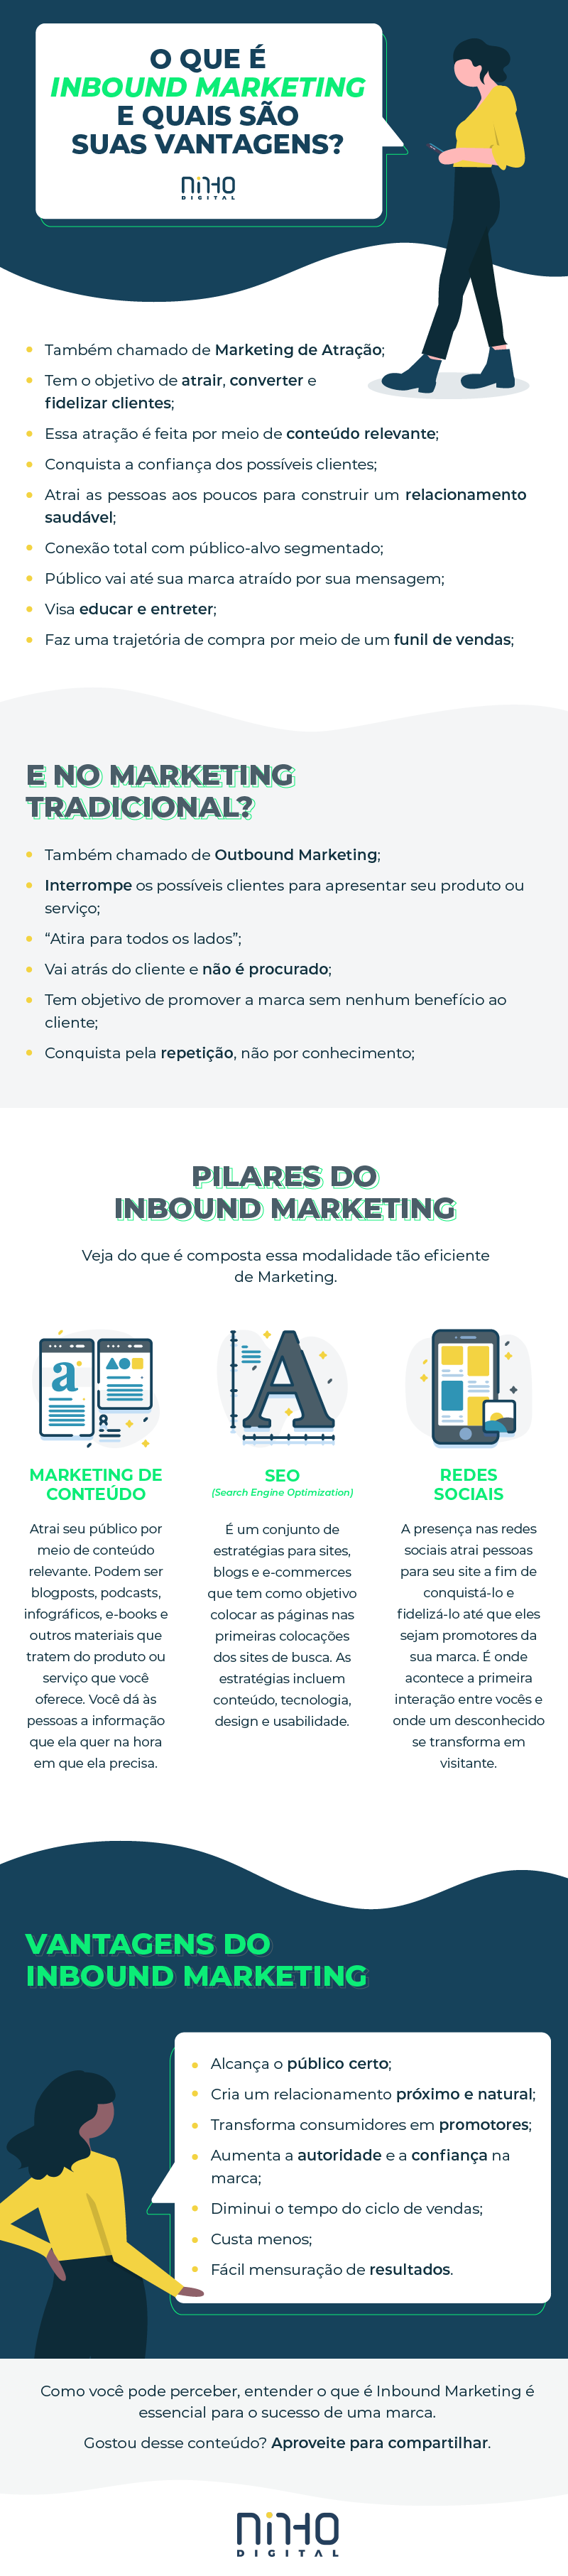 Infográfico: descubra o que é inbound marketing.